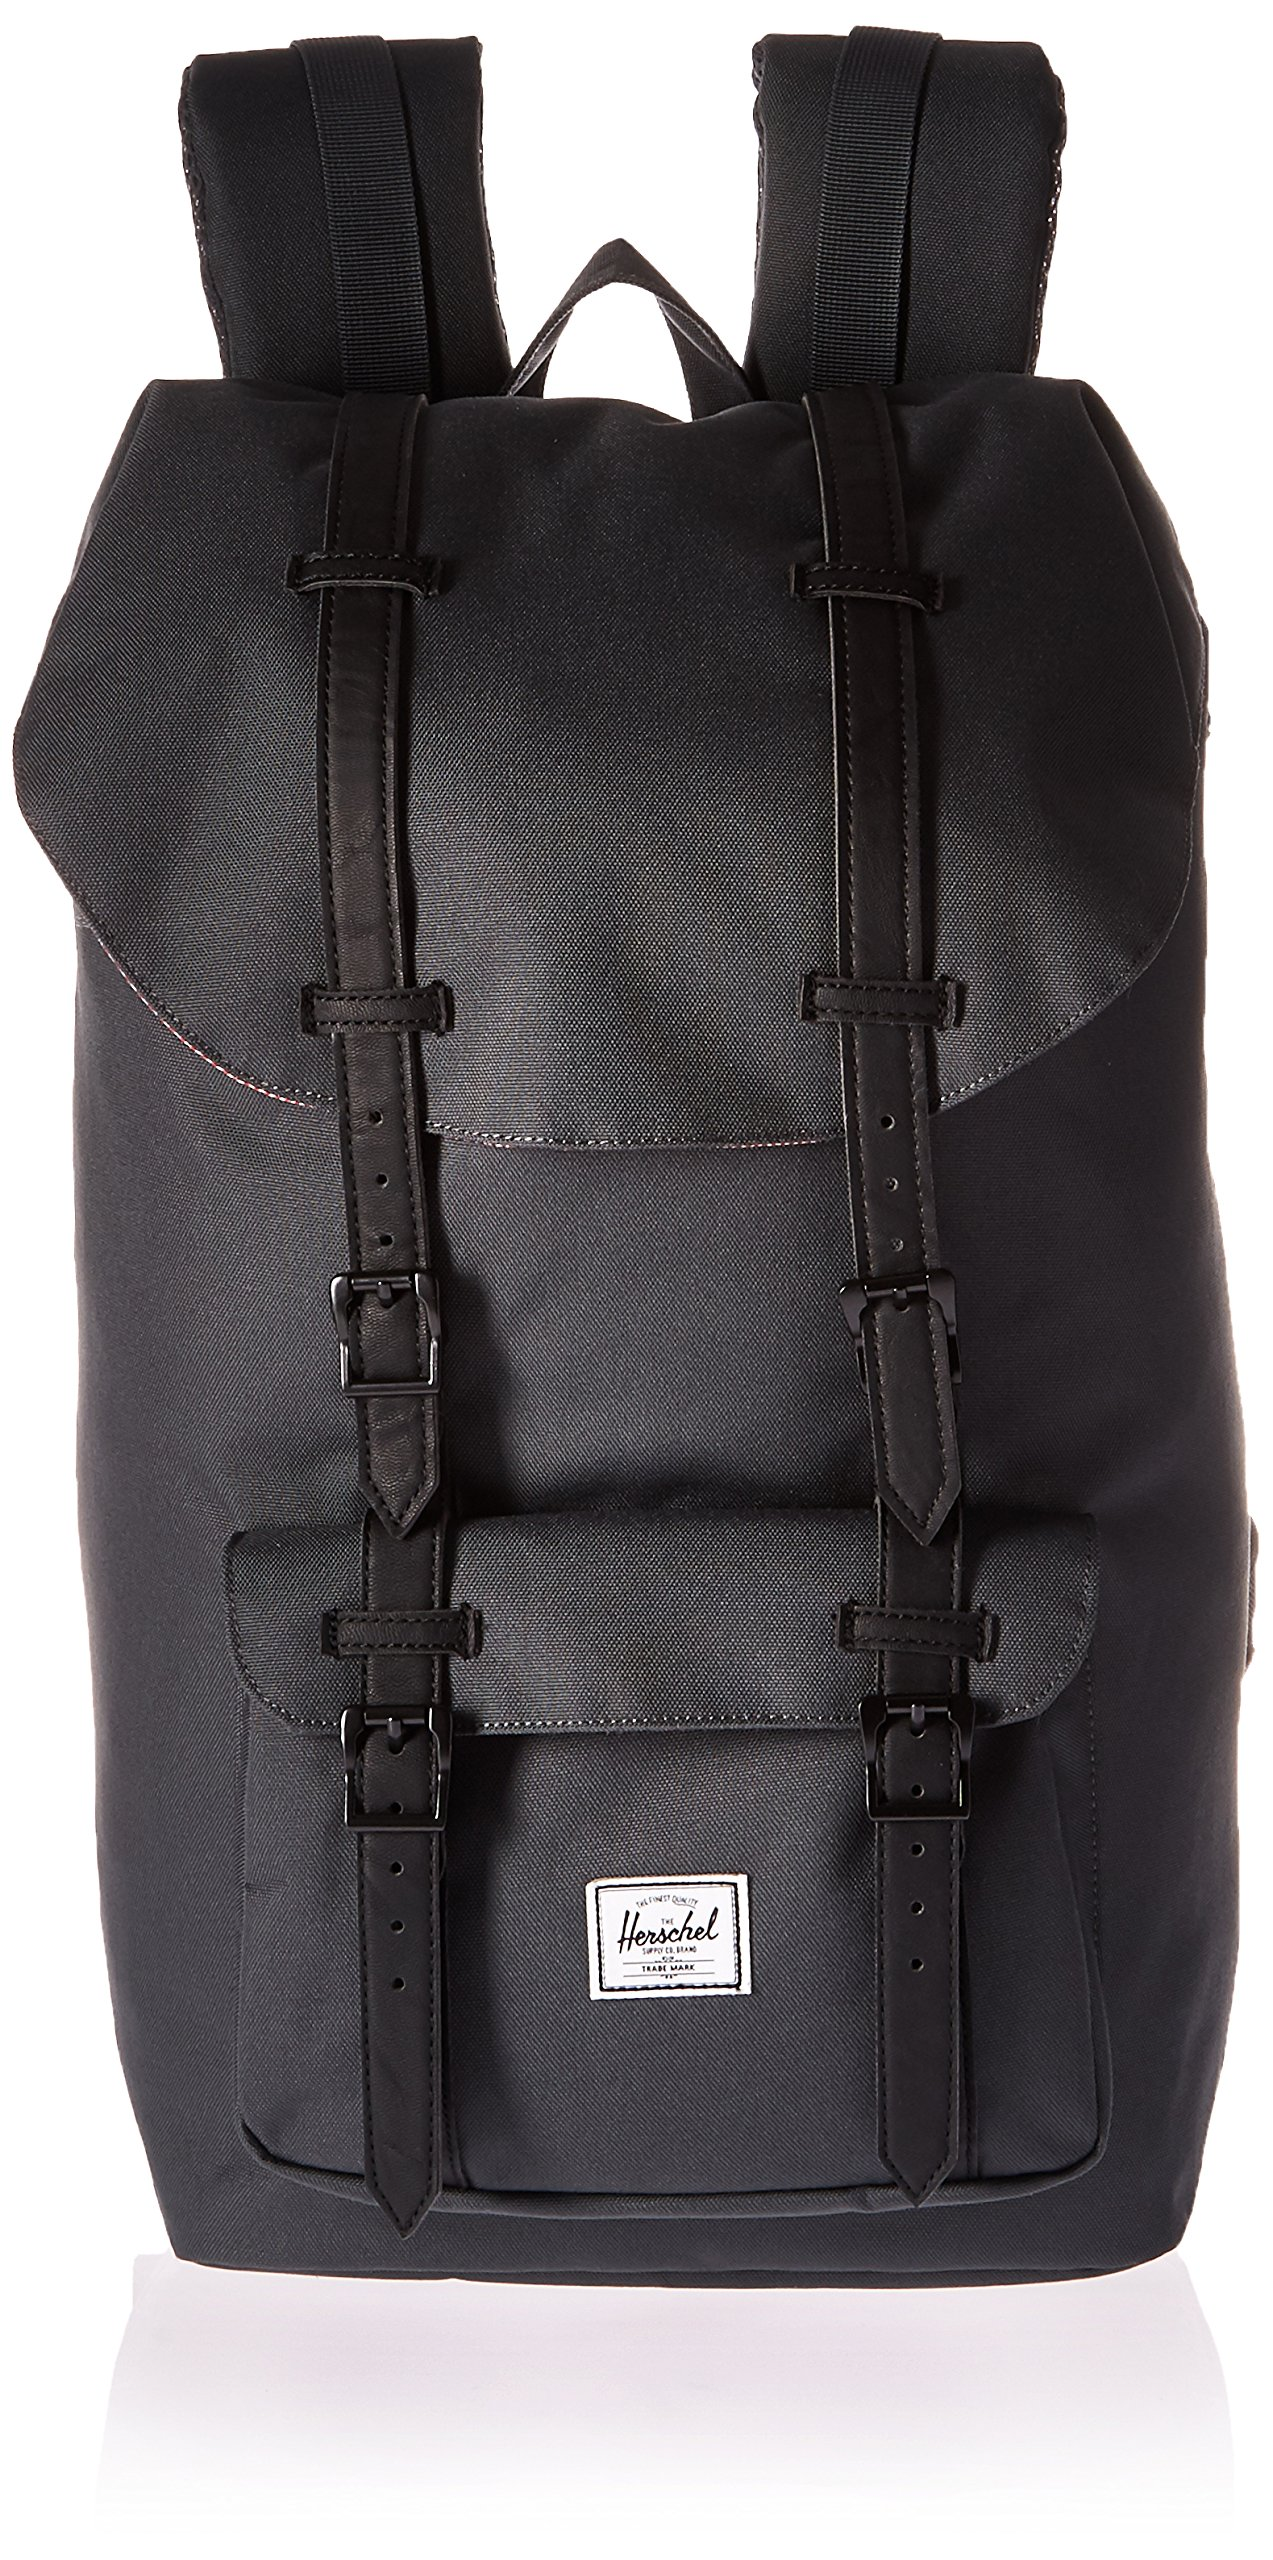 Herschel Supply Co. Little America Backpack, Dark Shadow/Black Synthetic Leather, One Size by Herschel Supply Co.